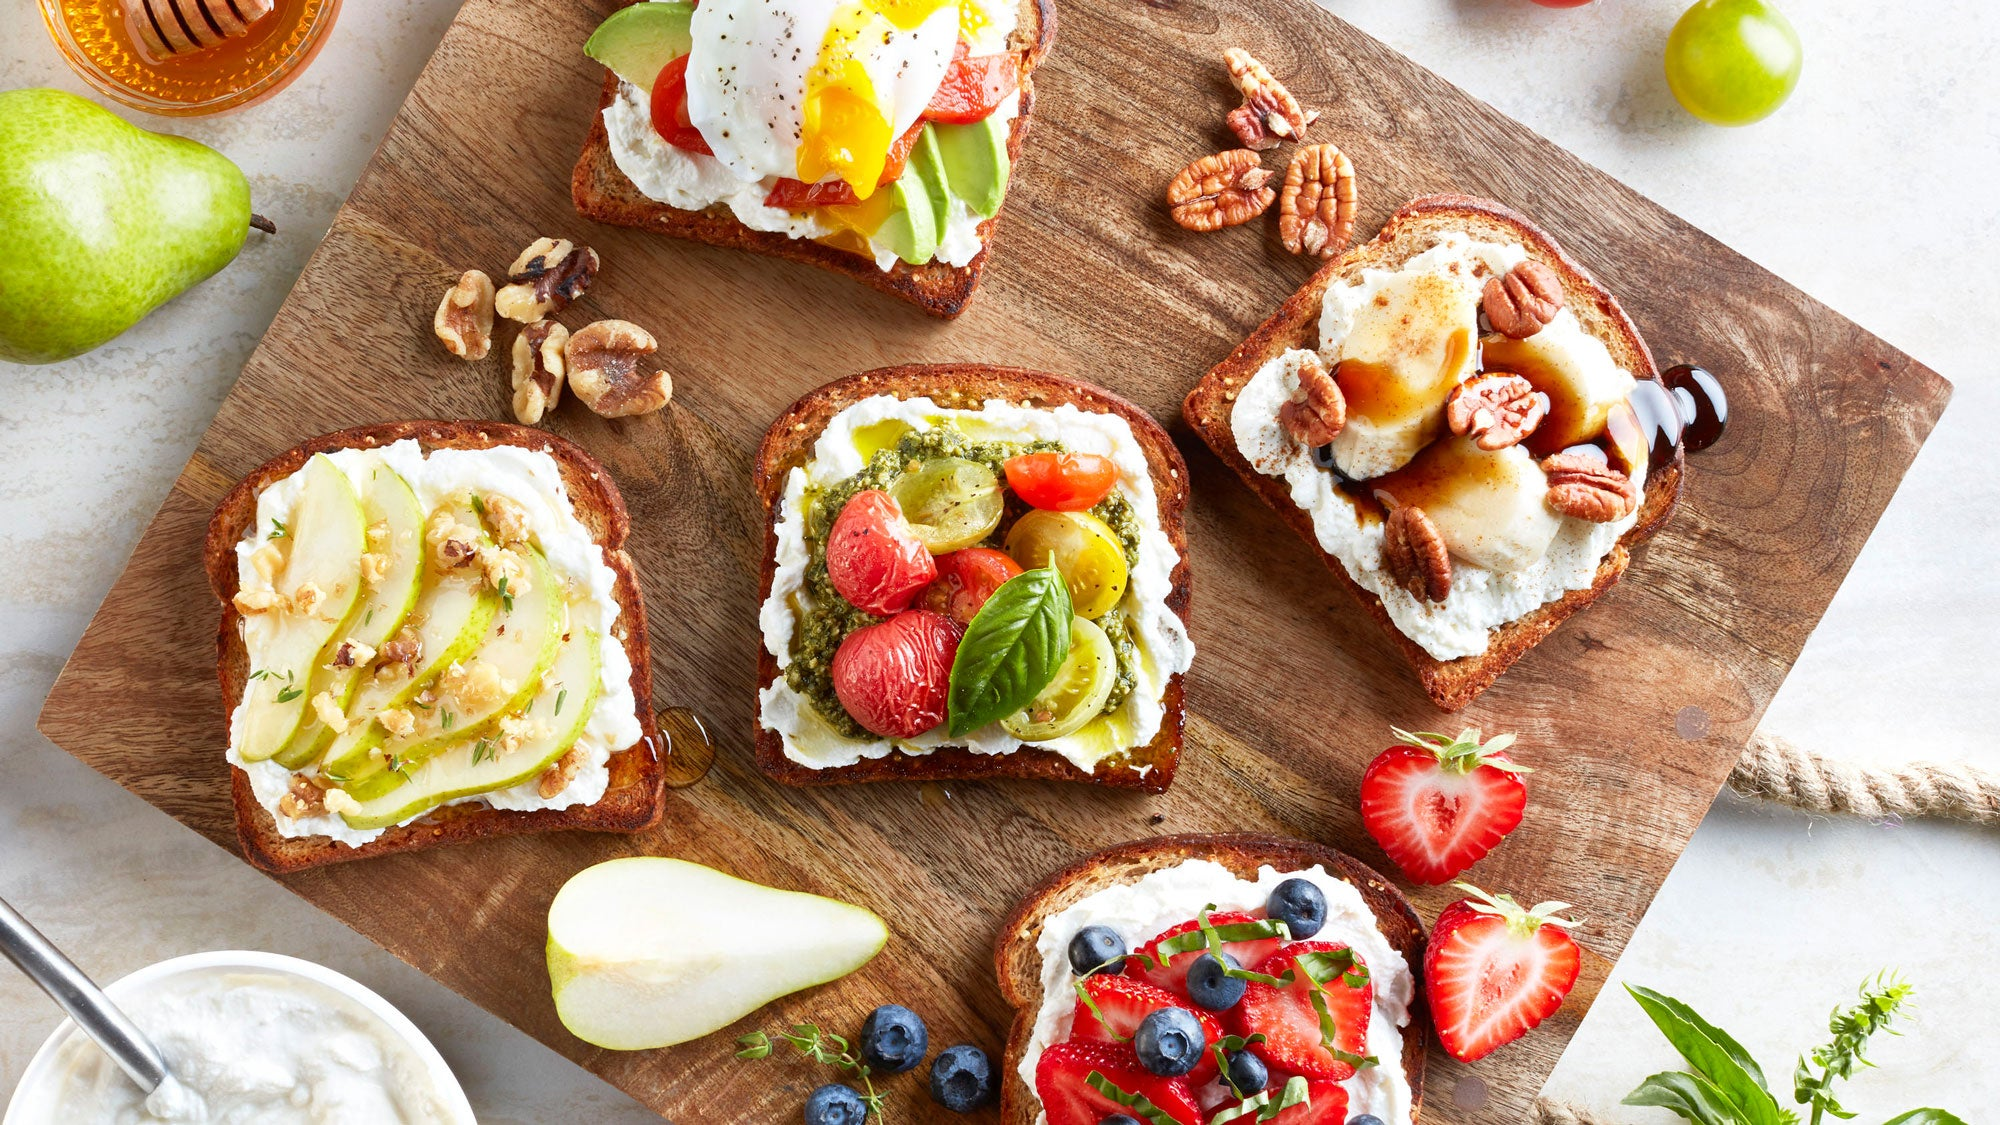 Why Ricotta Toast Is the New Avocado Toast